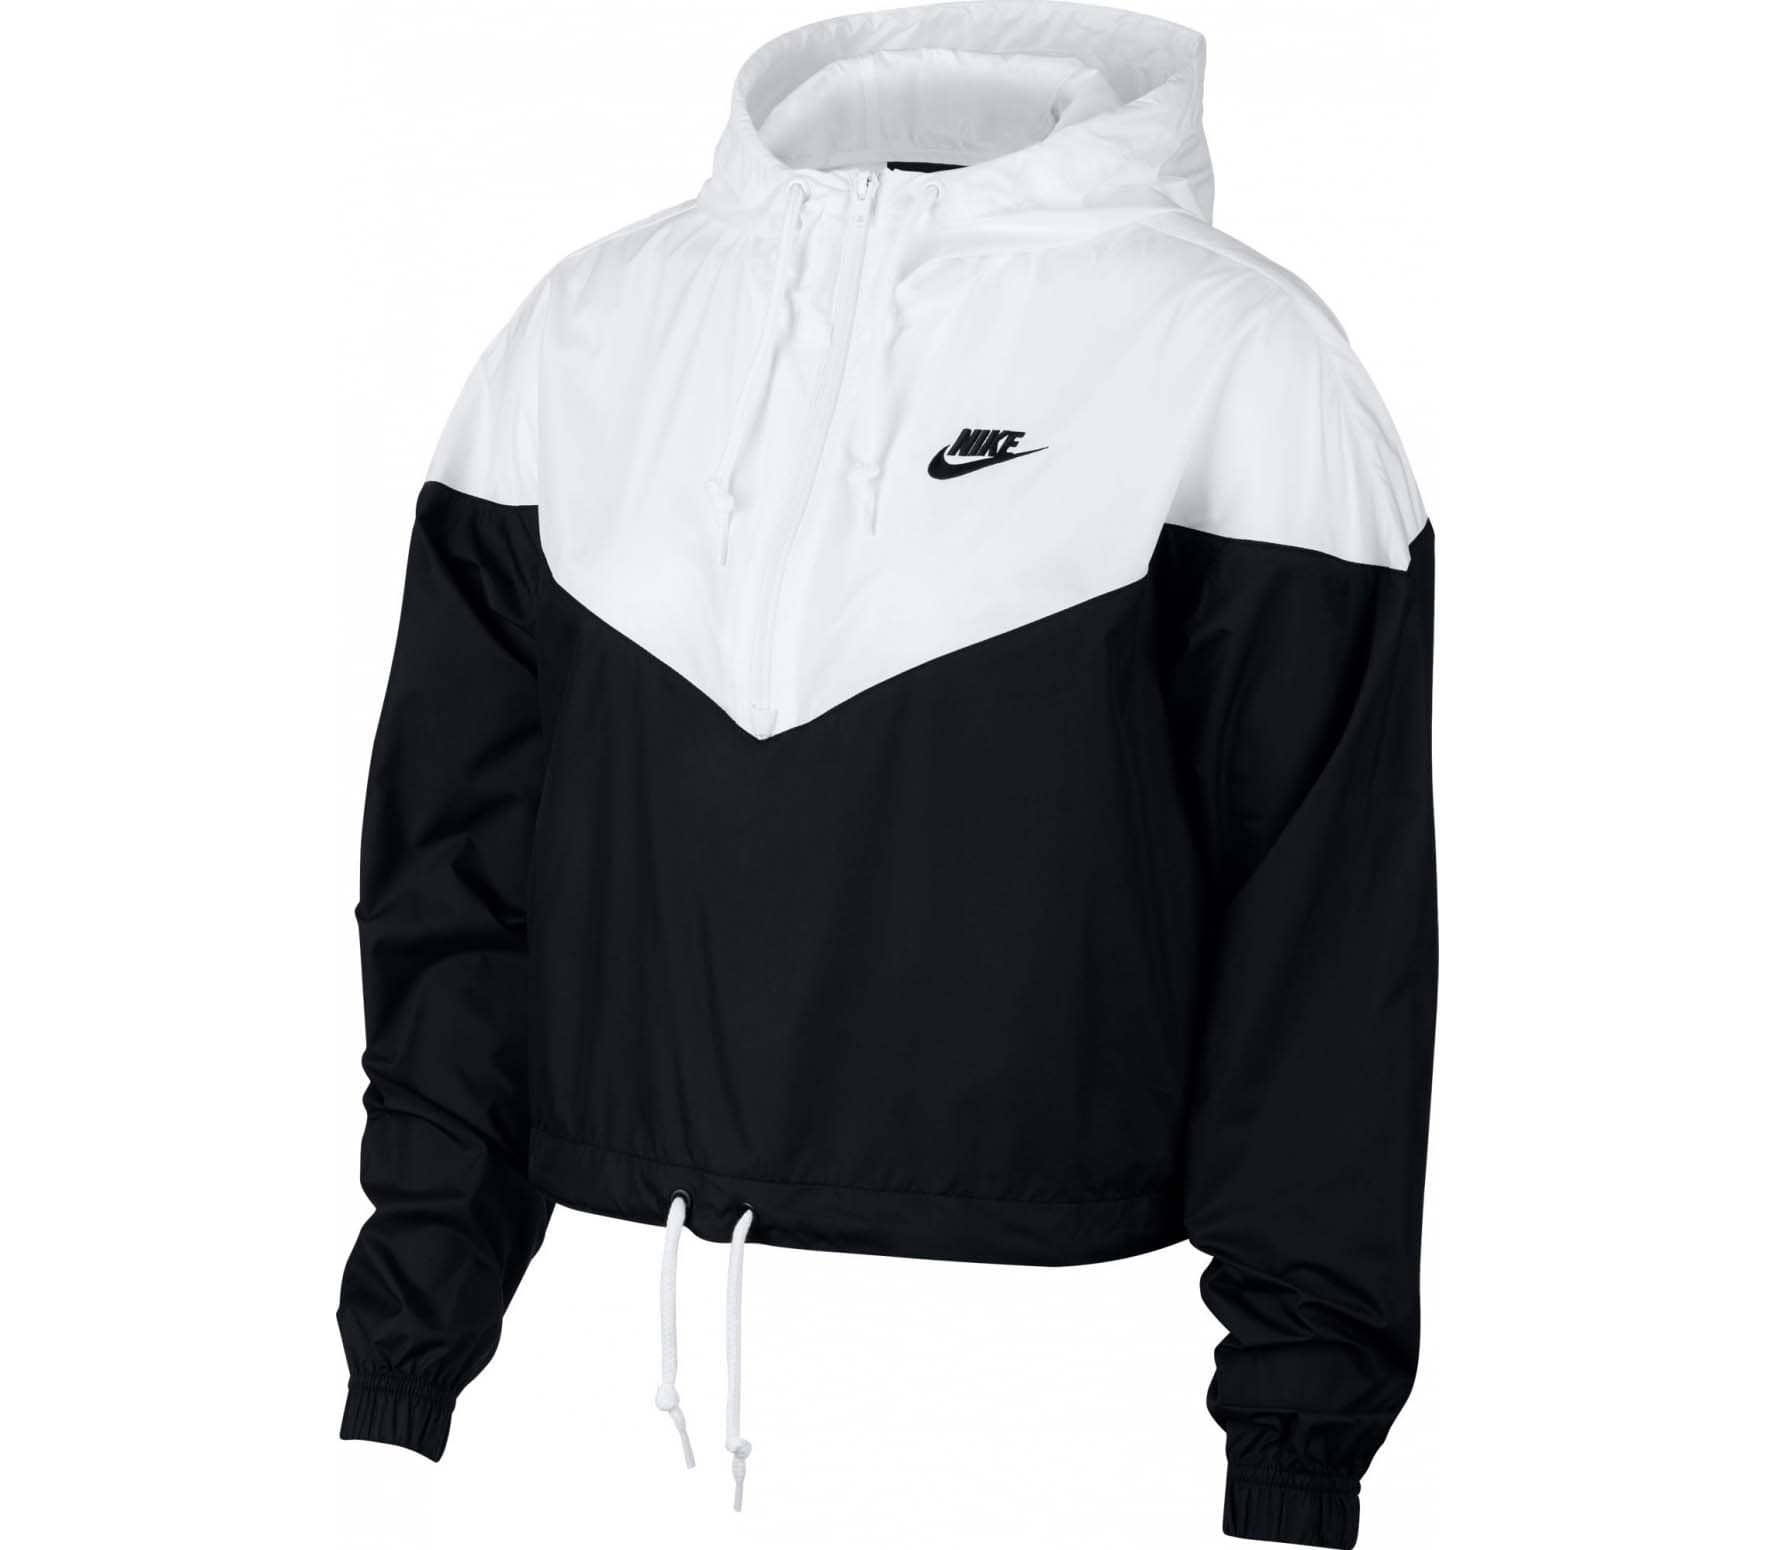 6a68e5e8179b Nike Sportswear - windbreaker women s jacket (black white) - buy it ...